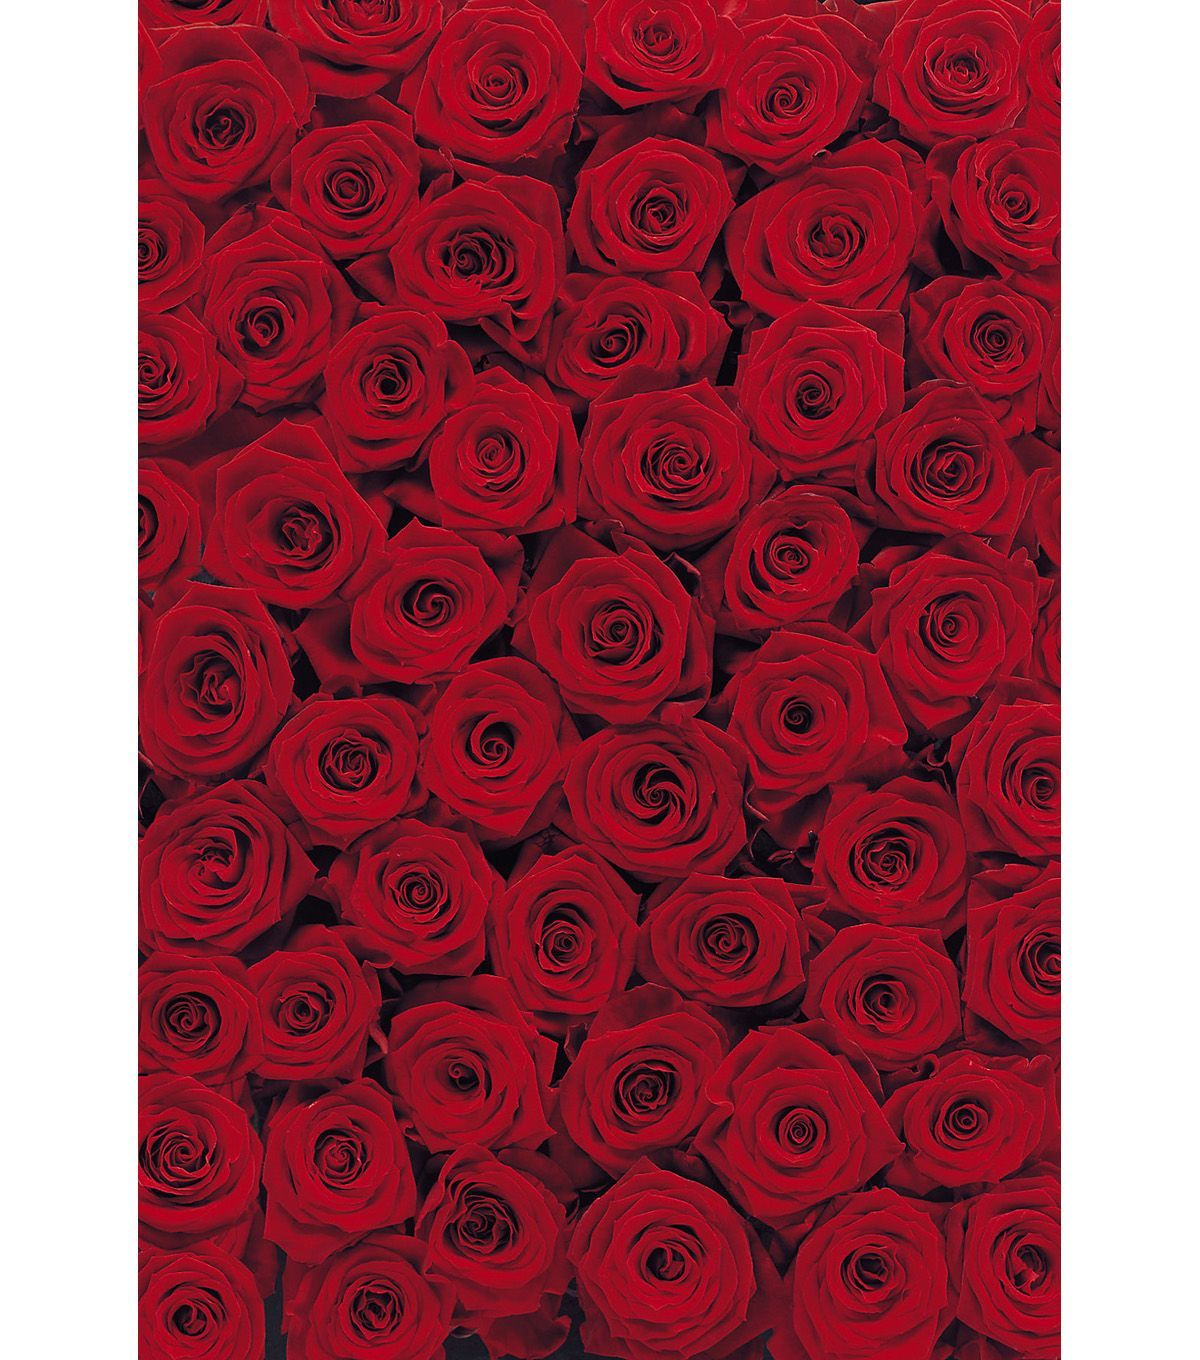 roses wall mural wall murals and walls roses wall mural